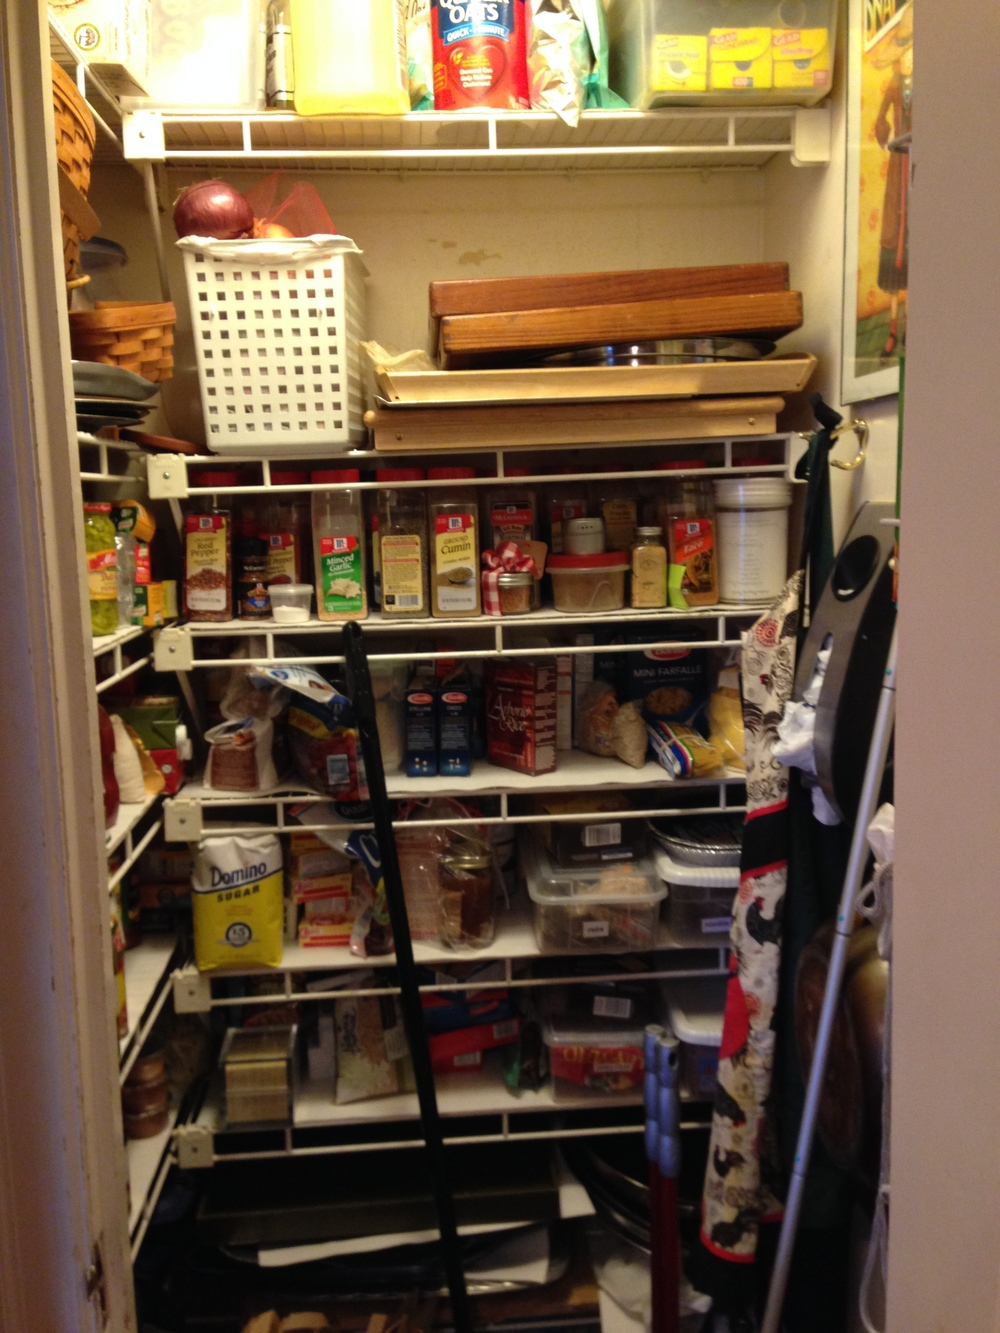 This is my old pantry - I hated the trays all stacked on each other and the overhang on the shelves. It was so hard to see what I had and what I needed to buy. Can you see the peeling paint? Ick.